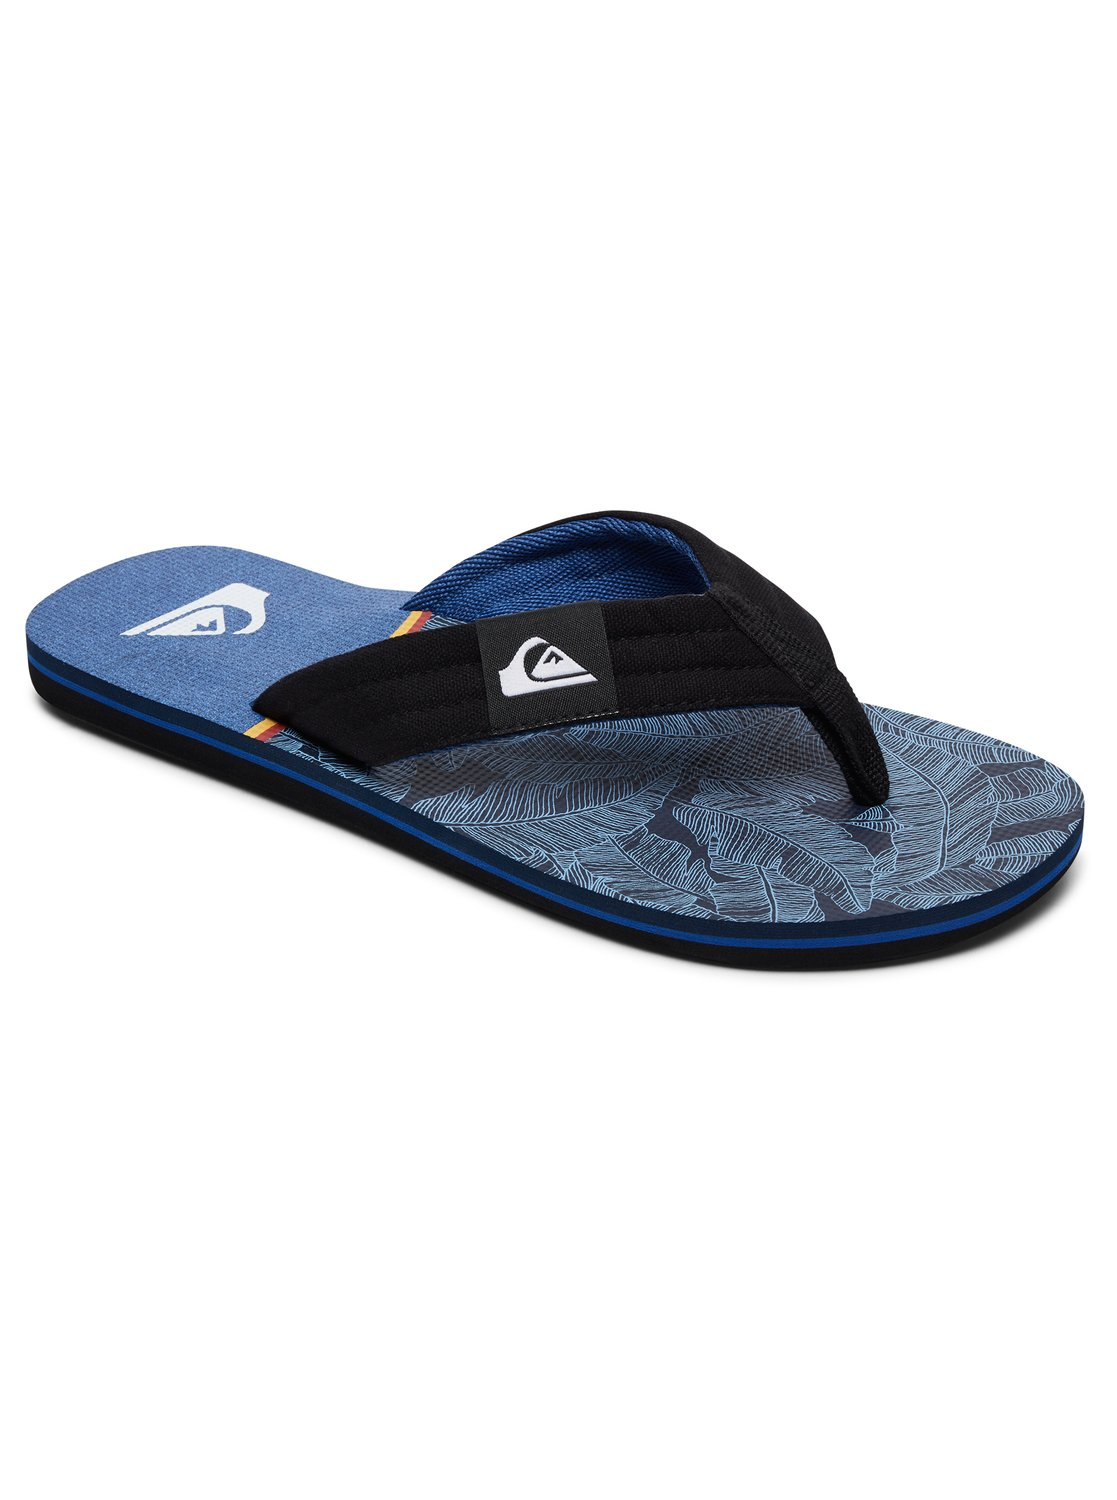 Quiksilver Molokai Layback Black / Blue / Blue - Chaussures Tongs Homme